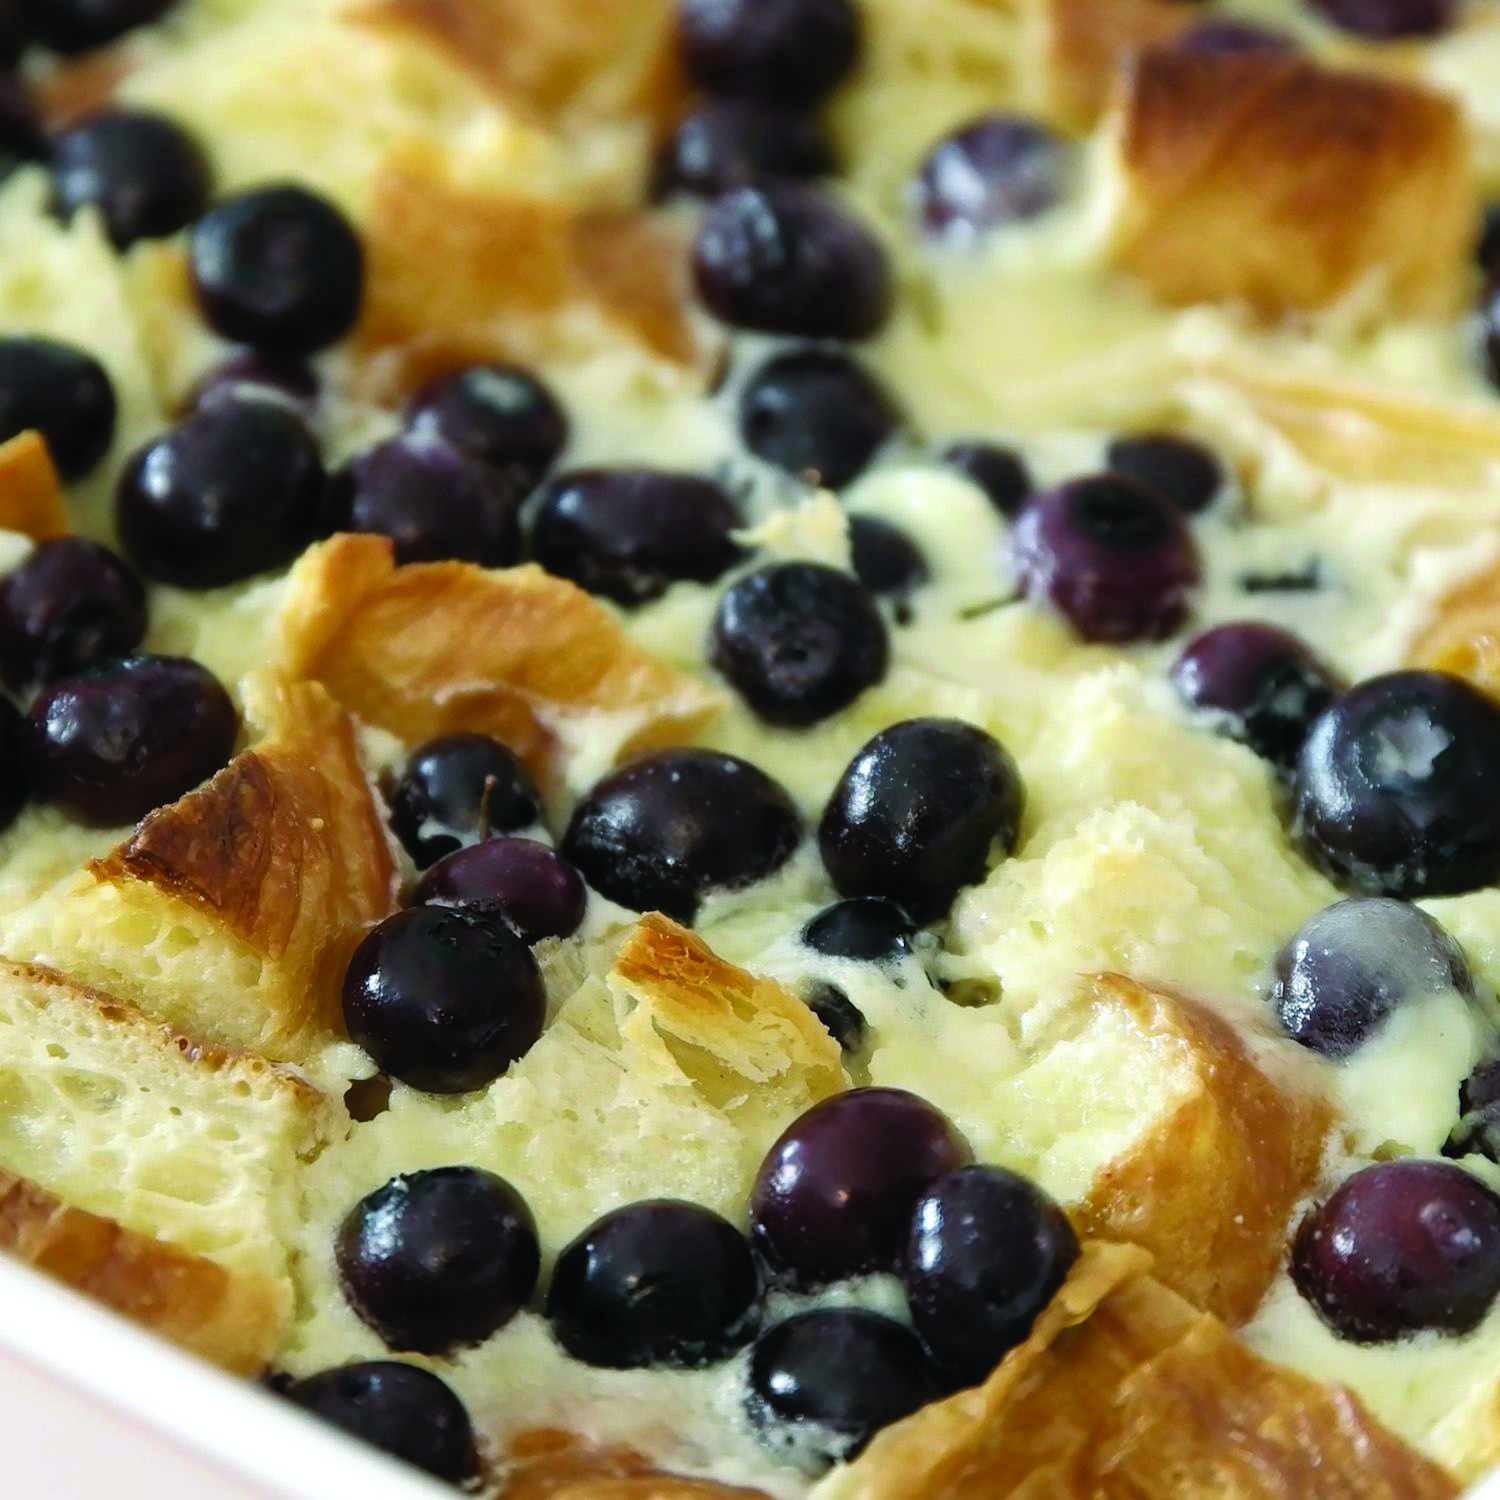 Enjoyable french toast casserole 9 x 13 including healthy meal ideas to help you get better